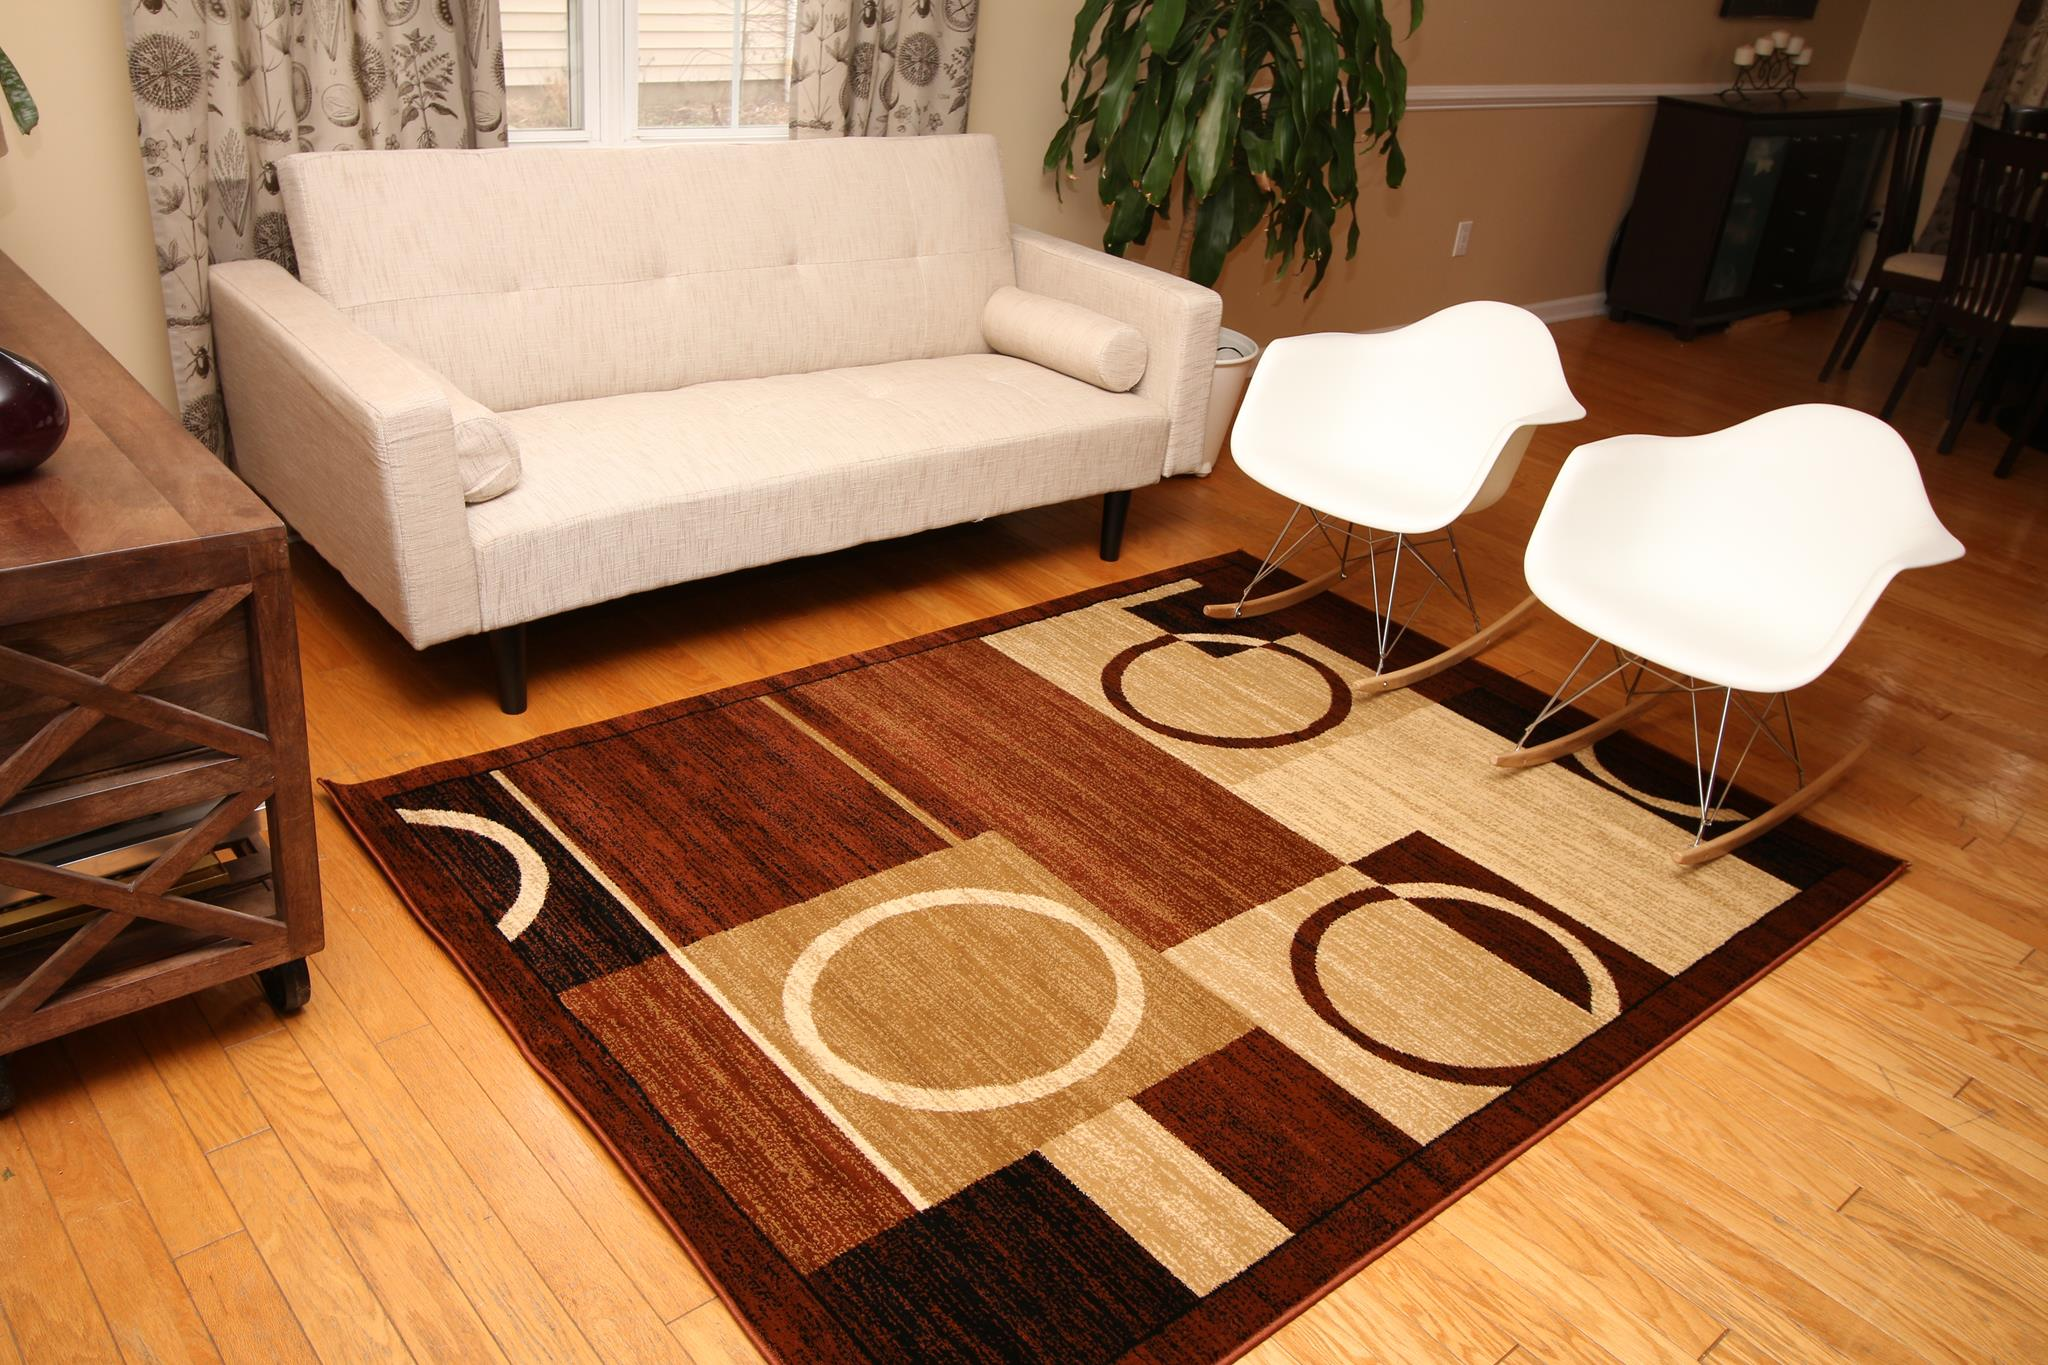 chatham lowe larger canada grey safavieh area dark simple ivory s view rugs rug